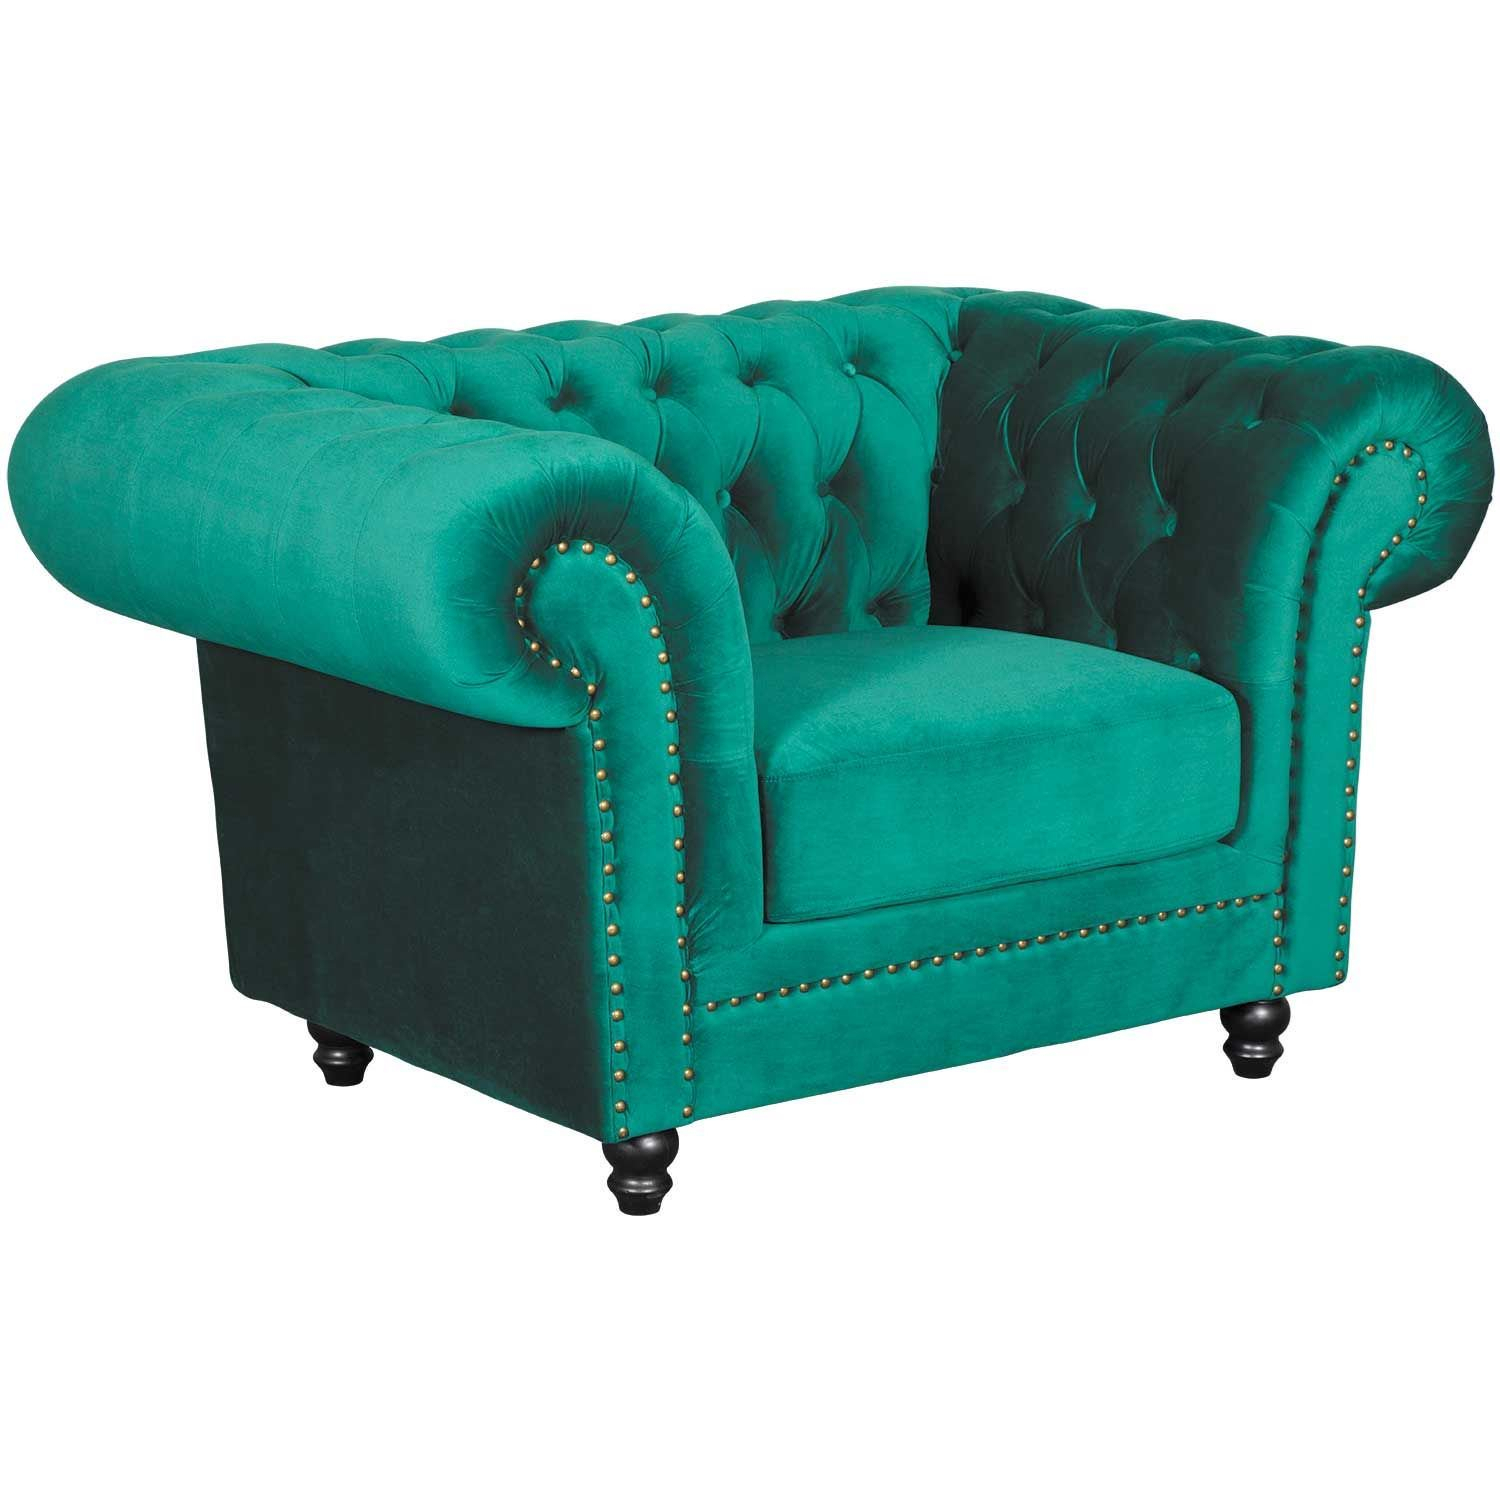 Callie Tufted Emerald Chair | My225 S1/cc 42 | Cambridge Home | Afw Pertaining To Callie Sofa Chairs (View 18 of 25)